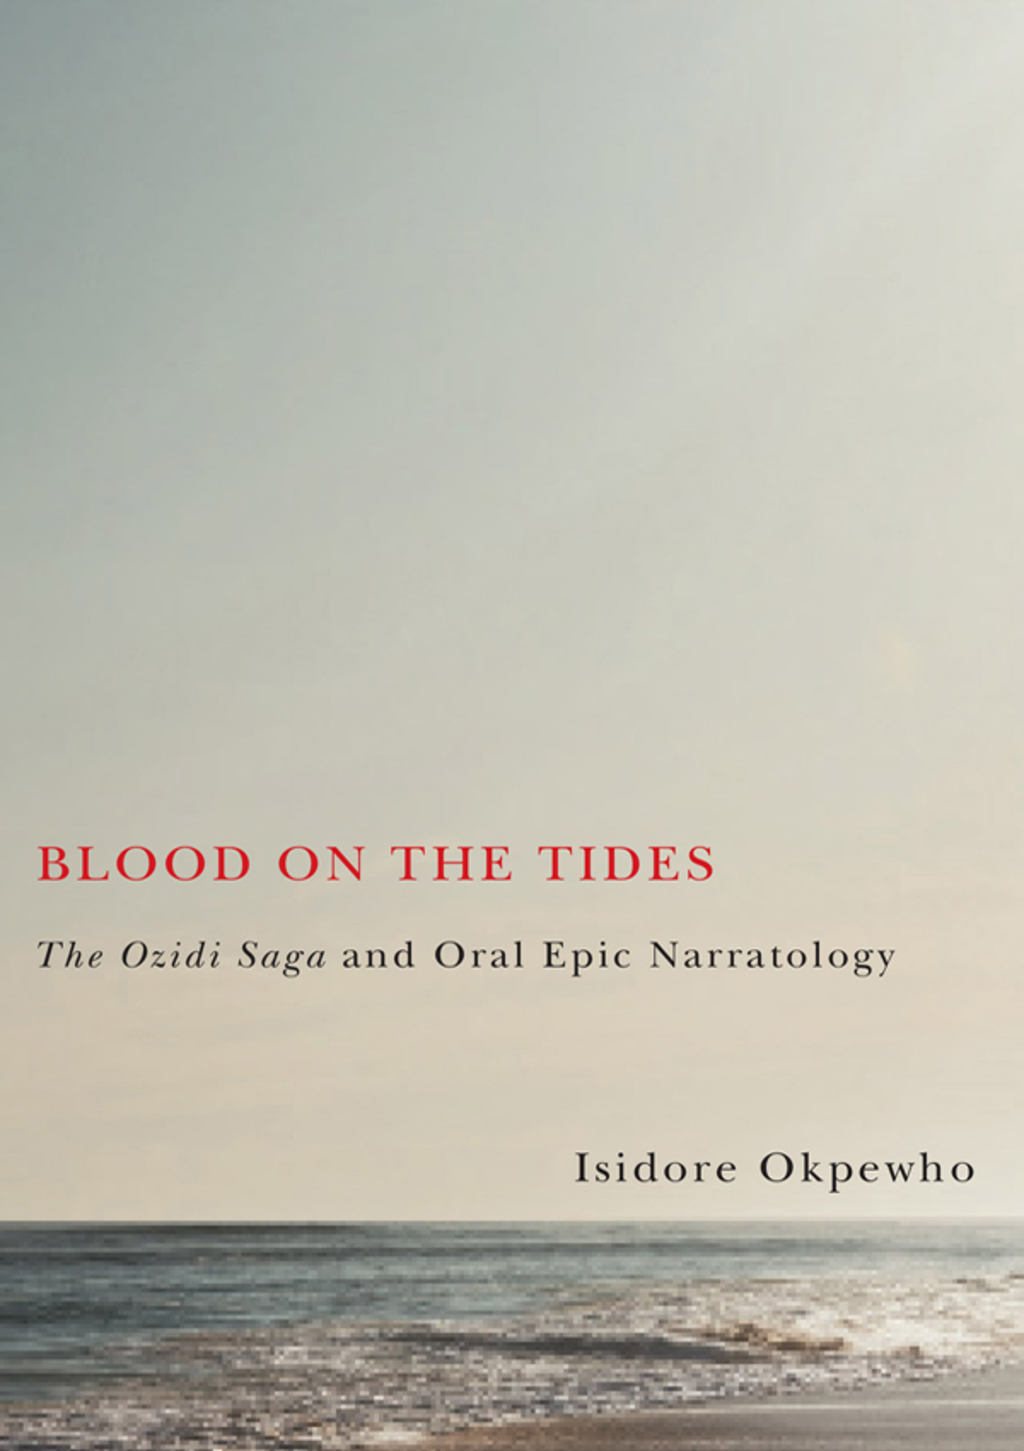 By Isidore Okpewho PRINTISBN: 9781580464871 E-TEXT ISBN: 9781580468794 Edition: 0